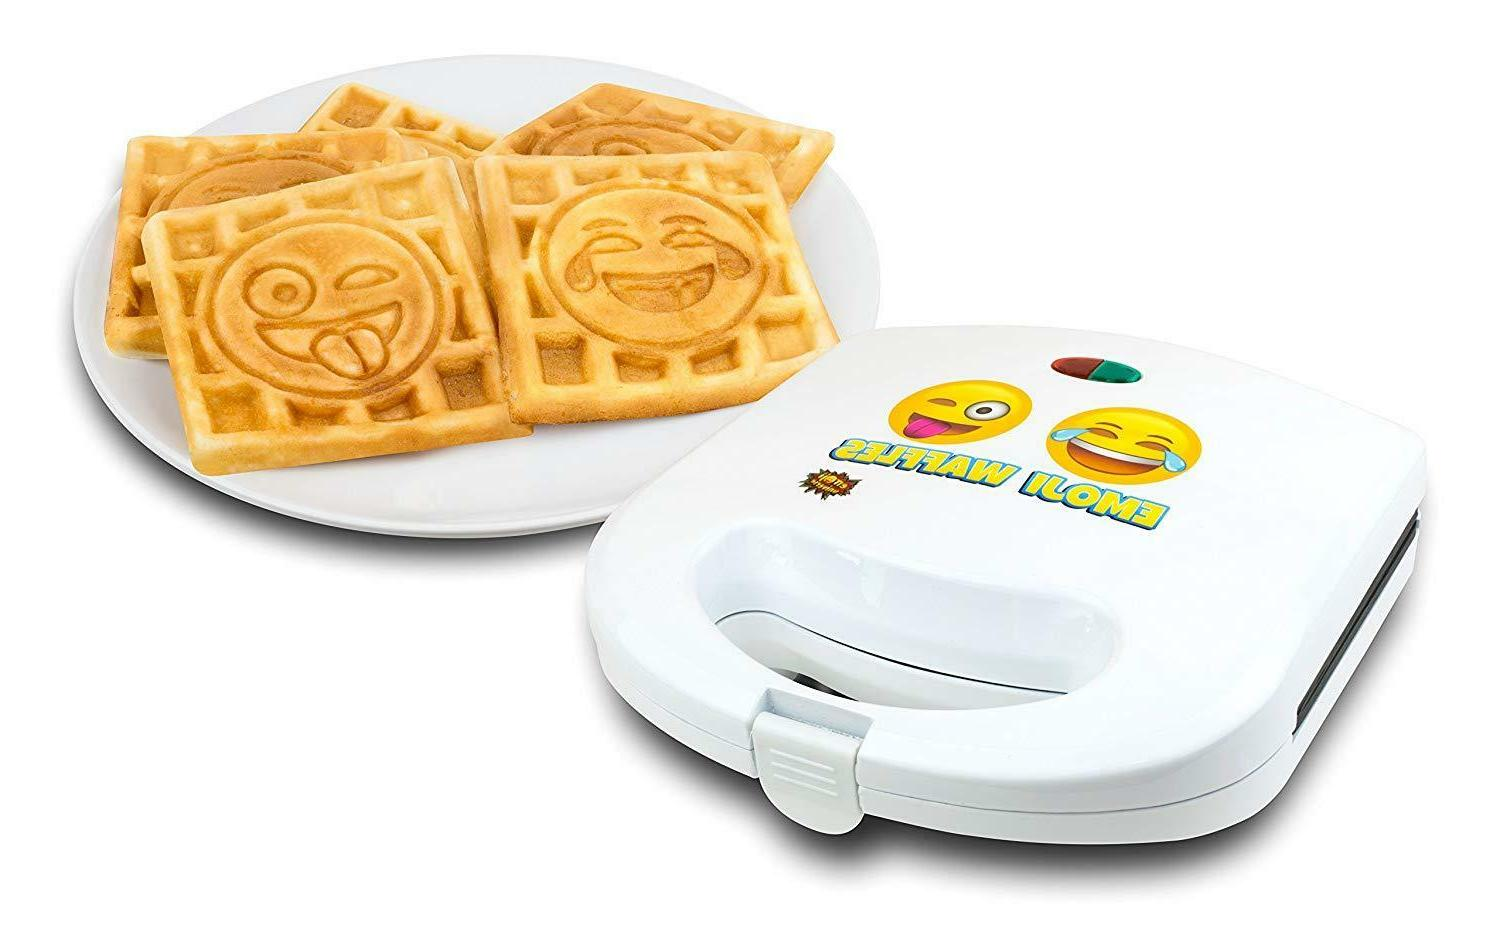 Emoji Waffle Maker Slice Iron Small Kitchen Appliances Breakfast